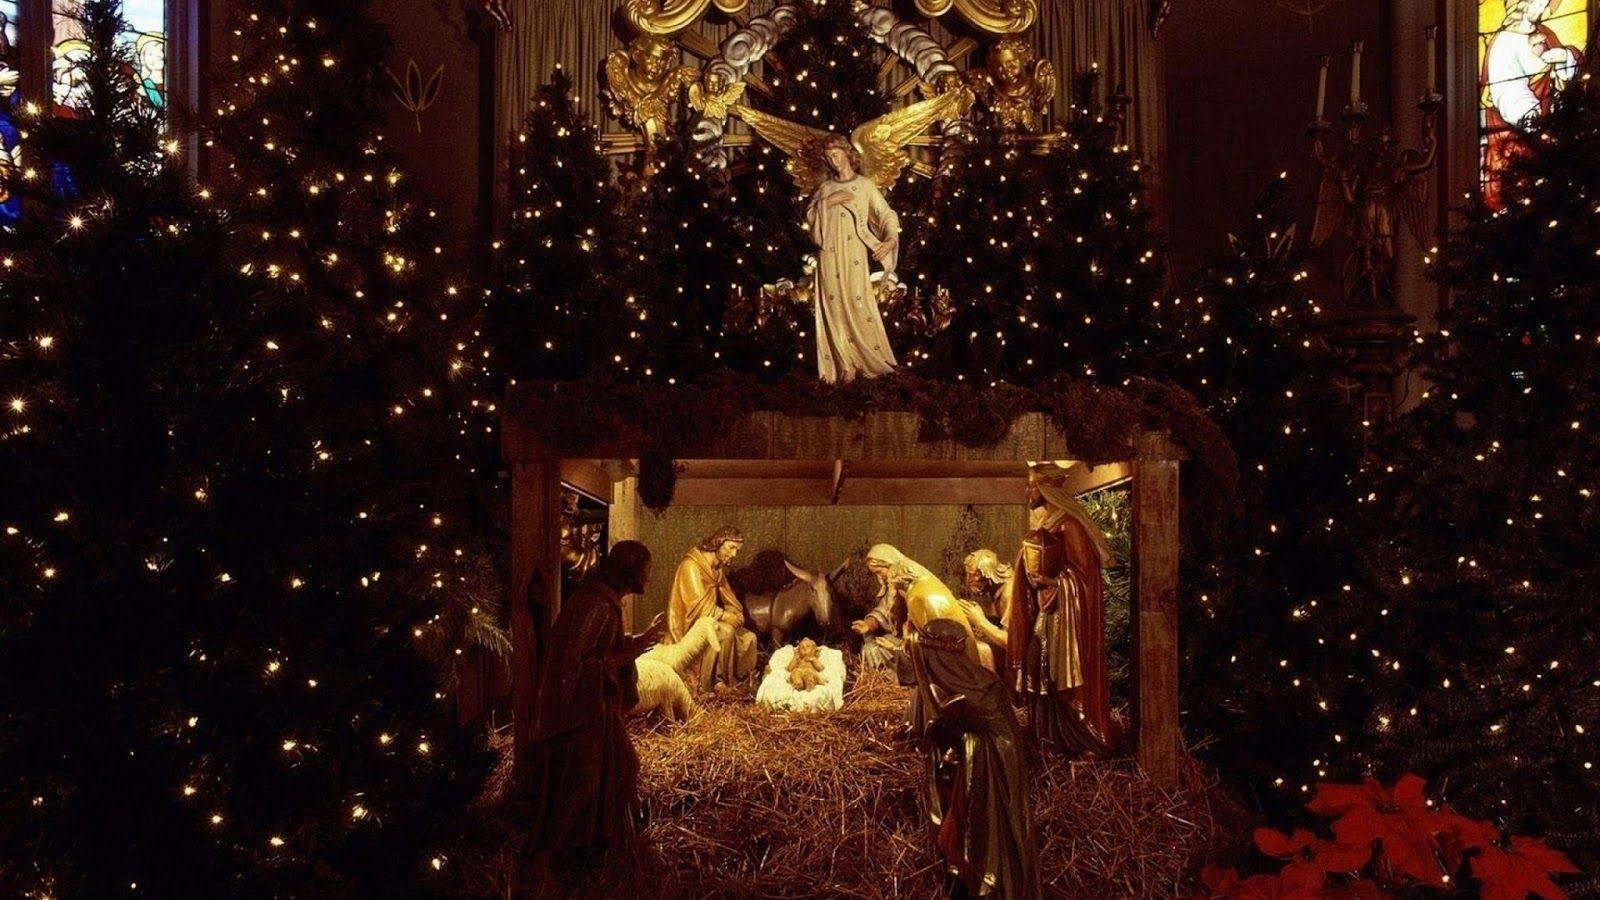 Merry Christmas Jesus Images Hd.Jesus Family Wallpapers Wallpaper Cave